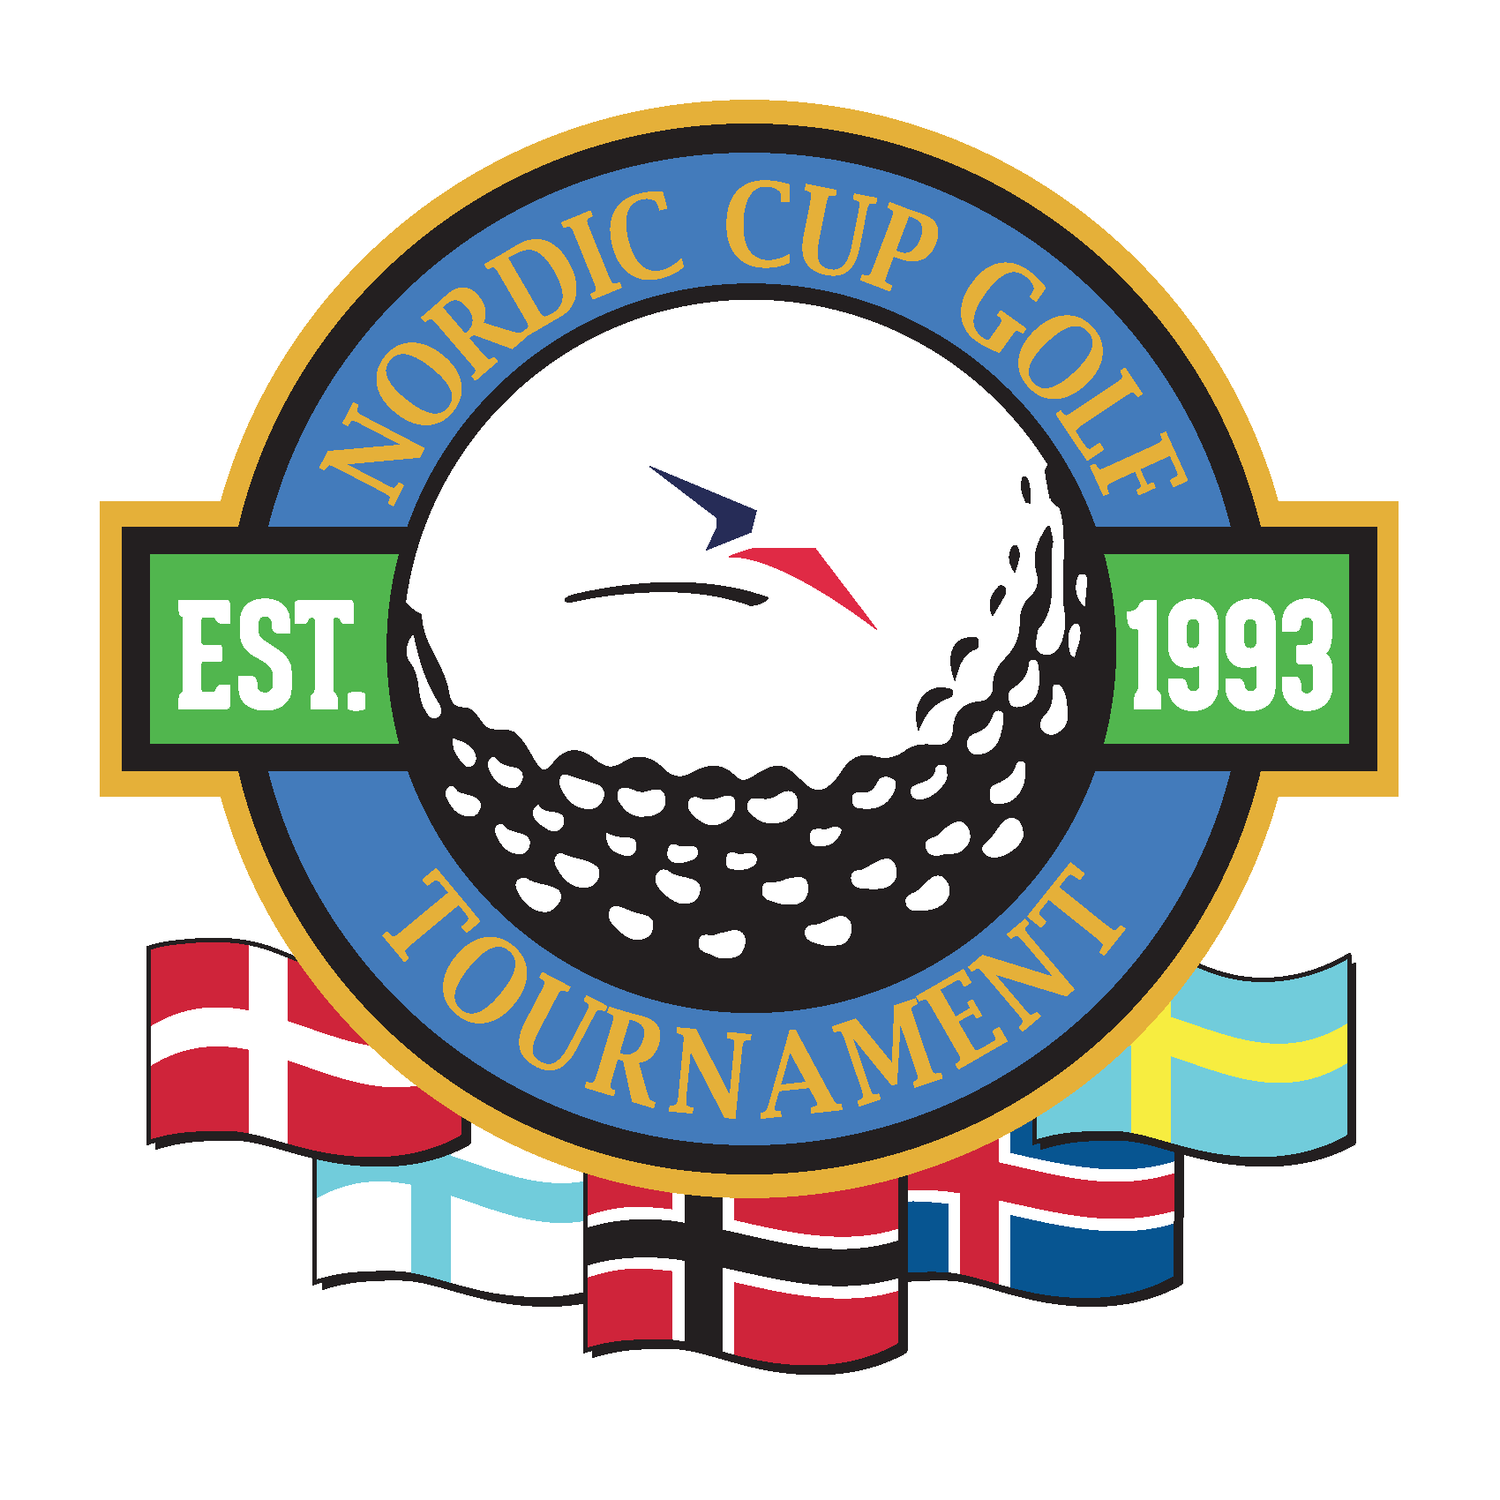 Nordic Cup Charity Golf Tournament